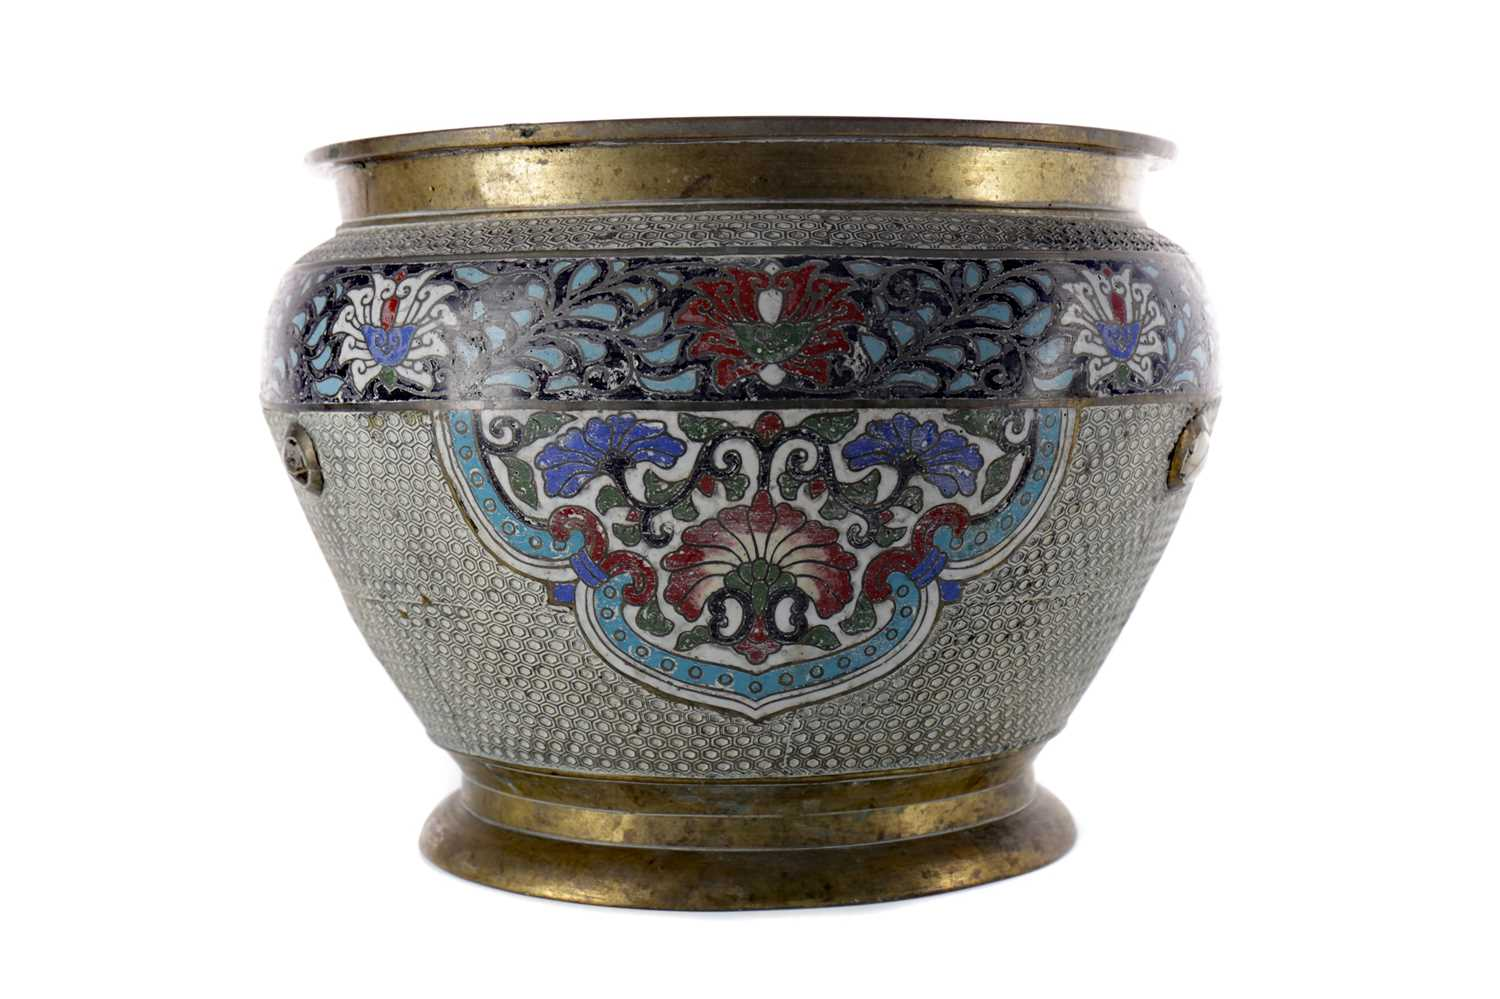 Lot 808 - AN EARLY 20TH CENTURY CHINESE BRASS PLANTER